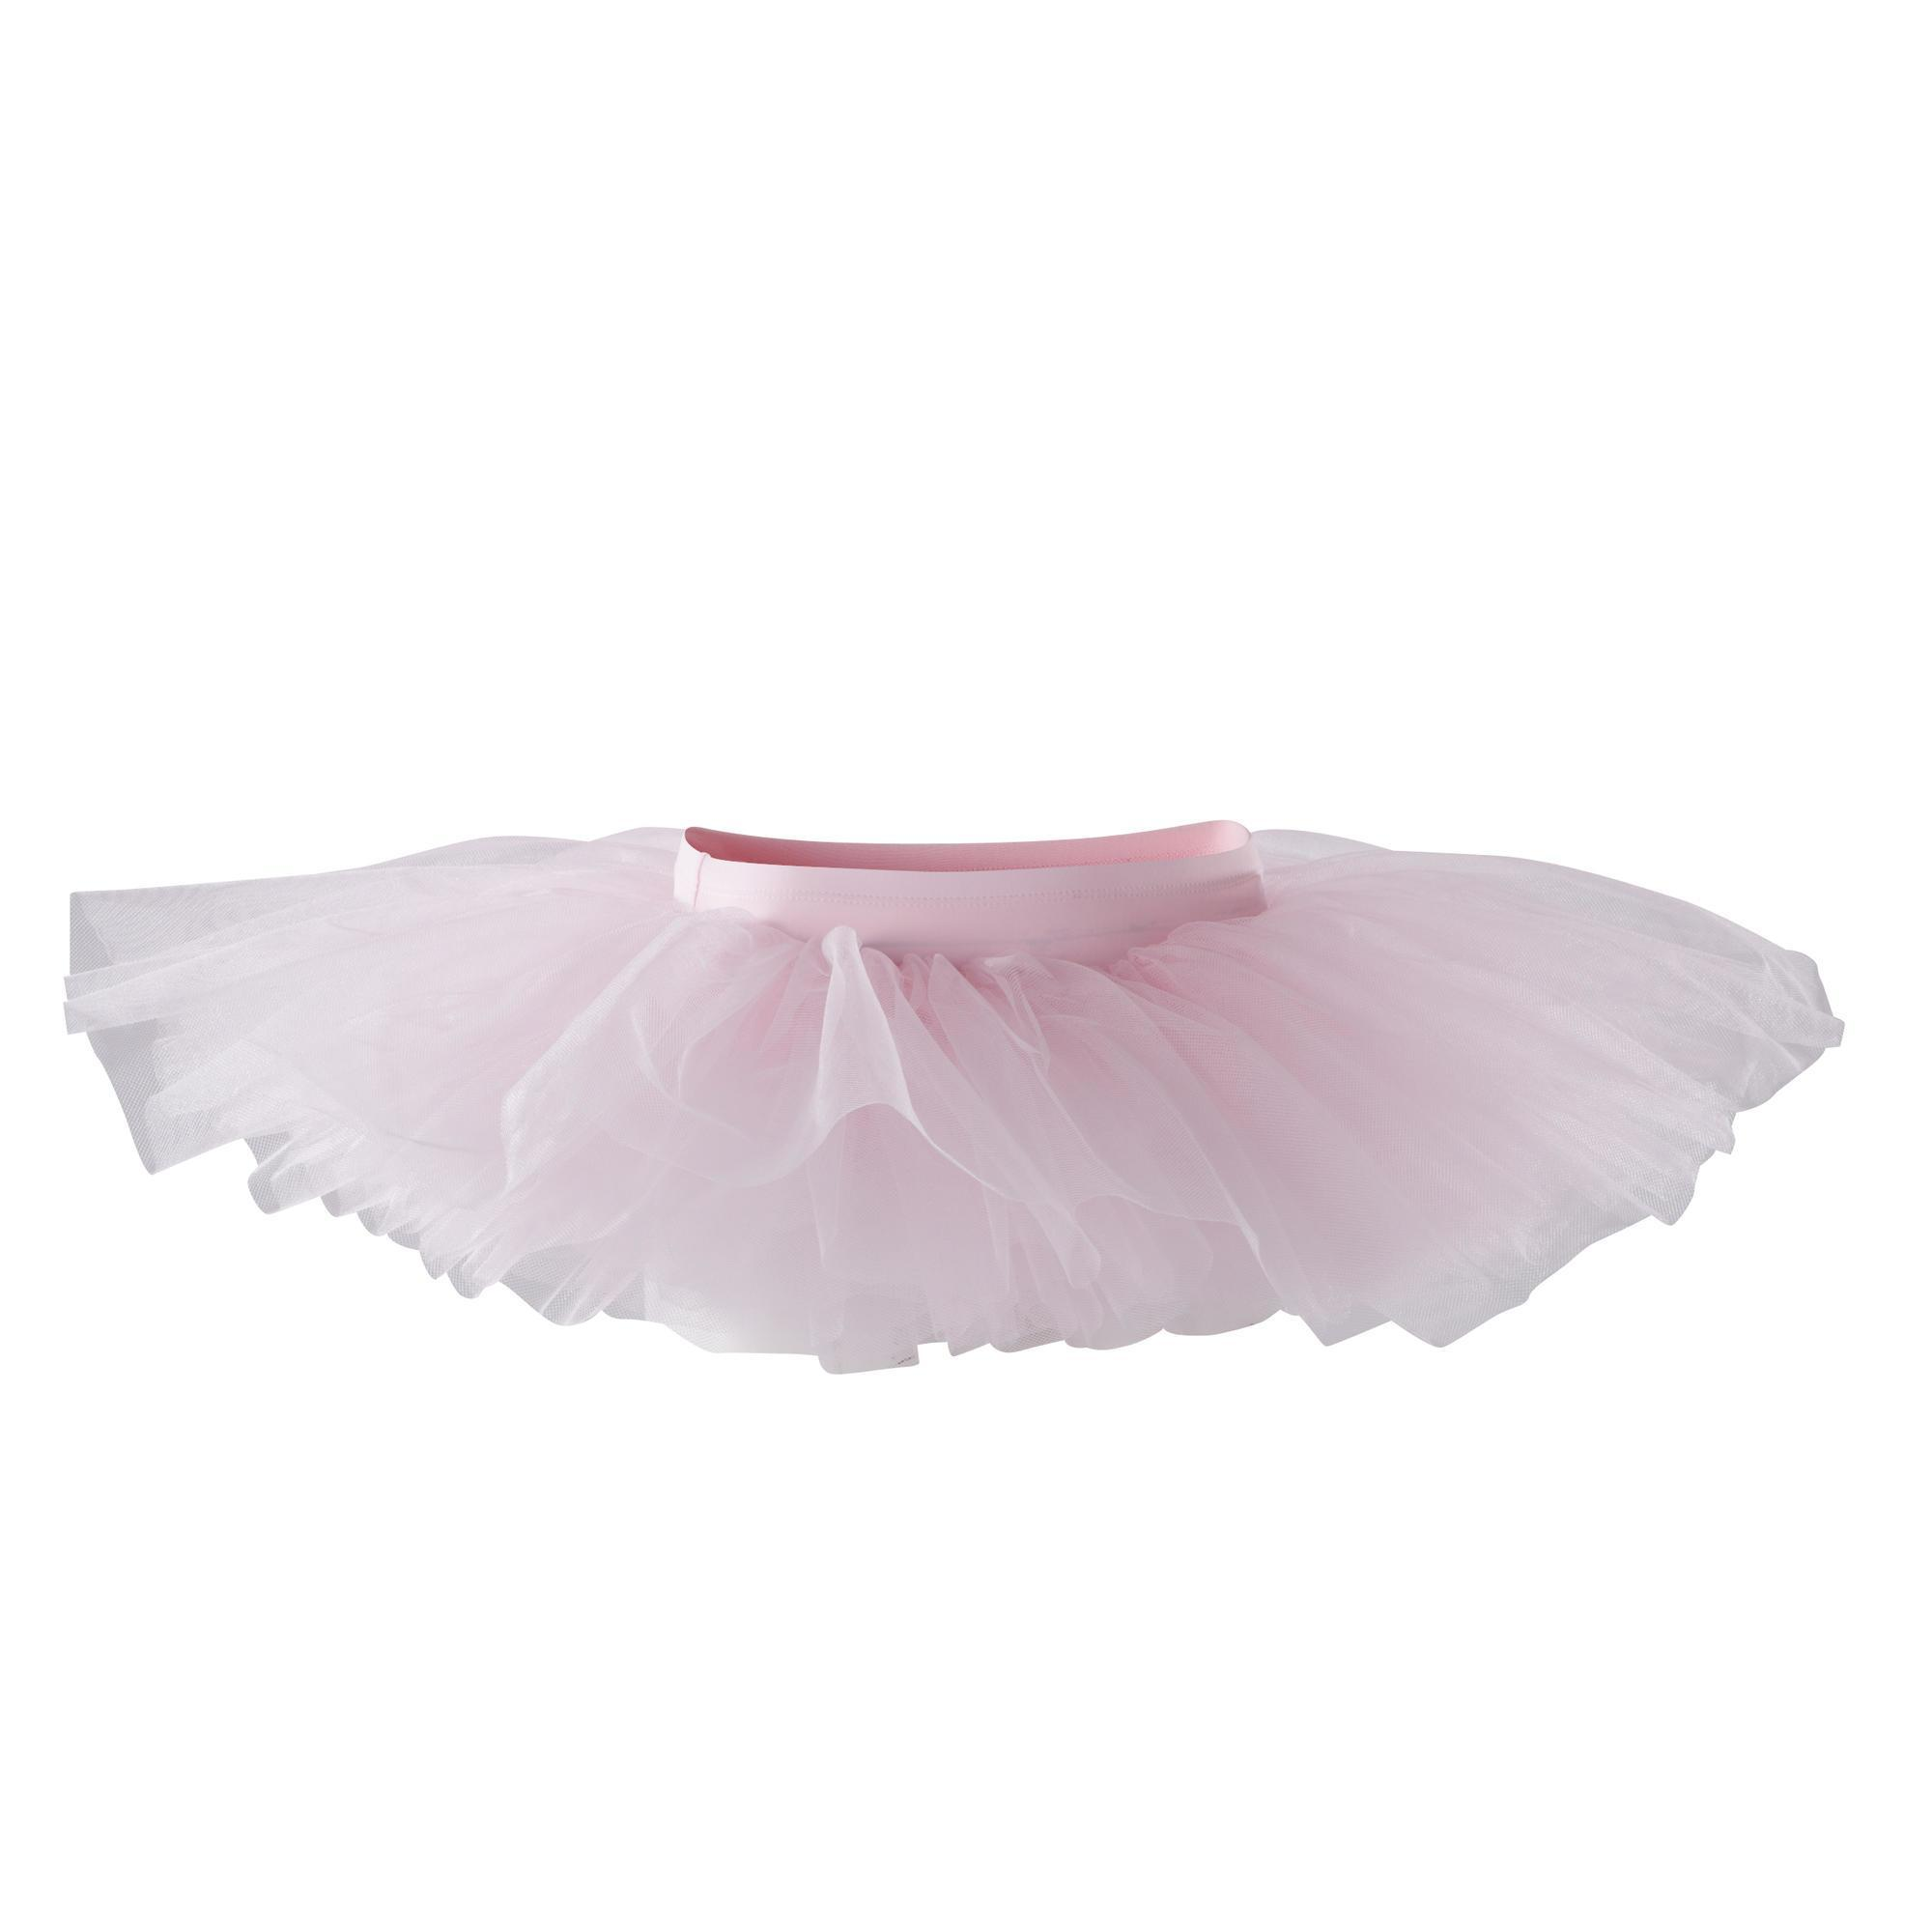 Tutu Clothing, Shoes & Accessories